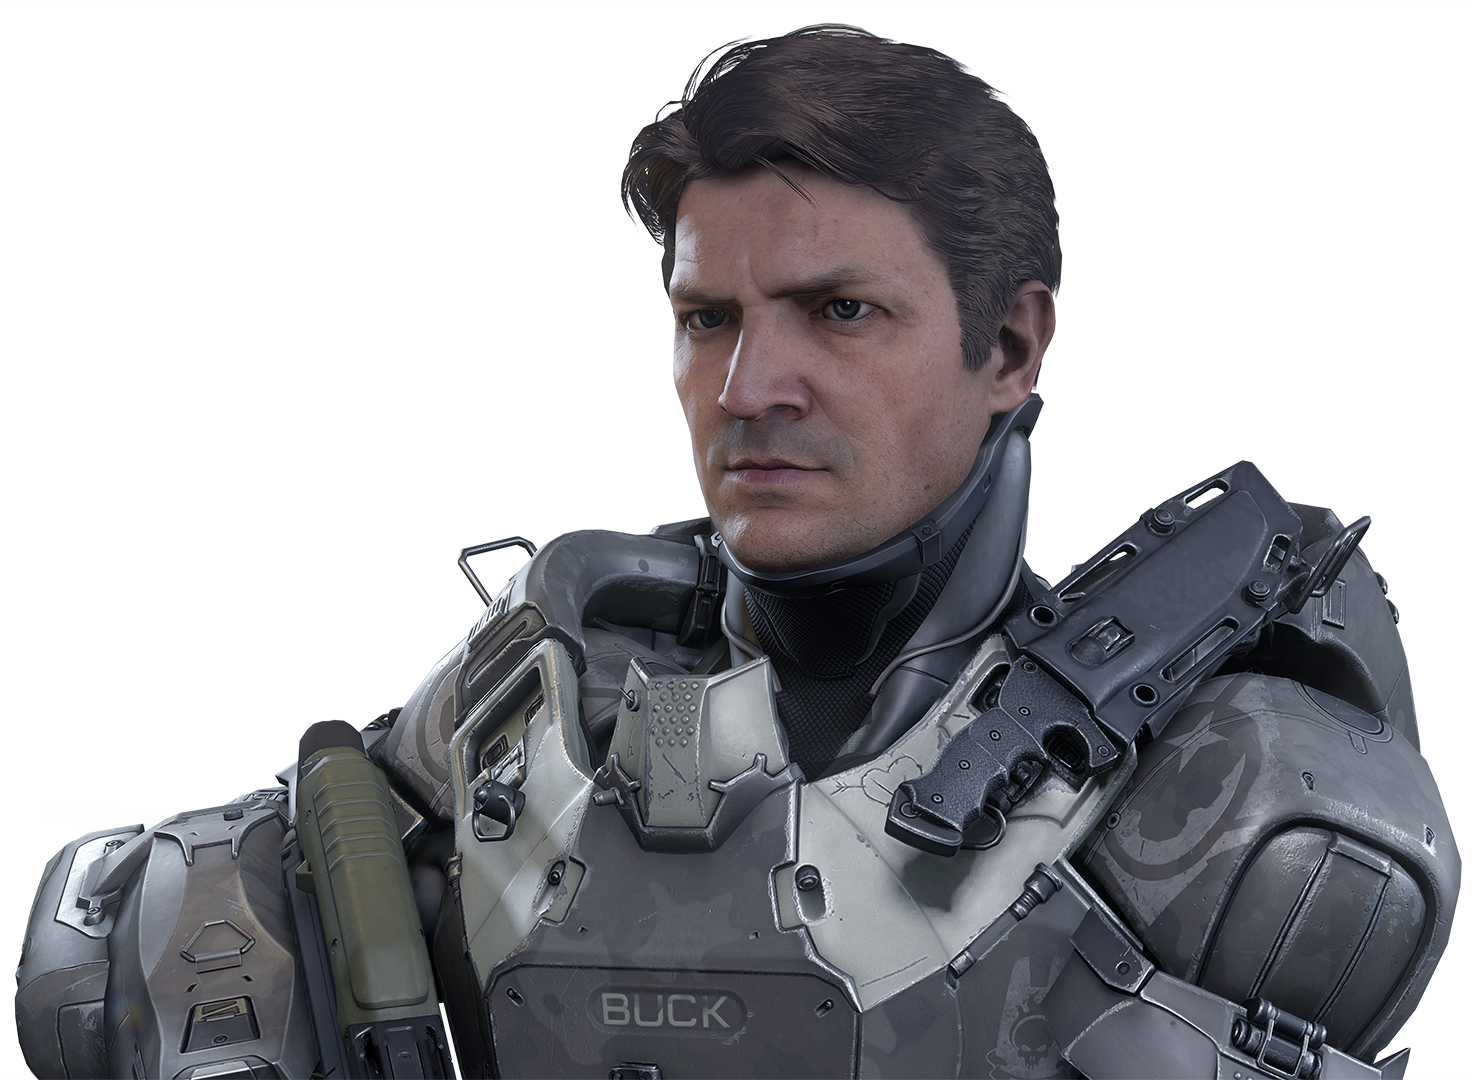 Edward Buck | Halo Alpha | FANDOM powered by Wikia